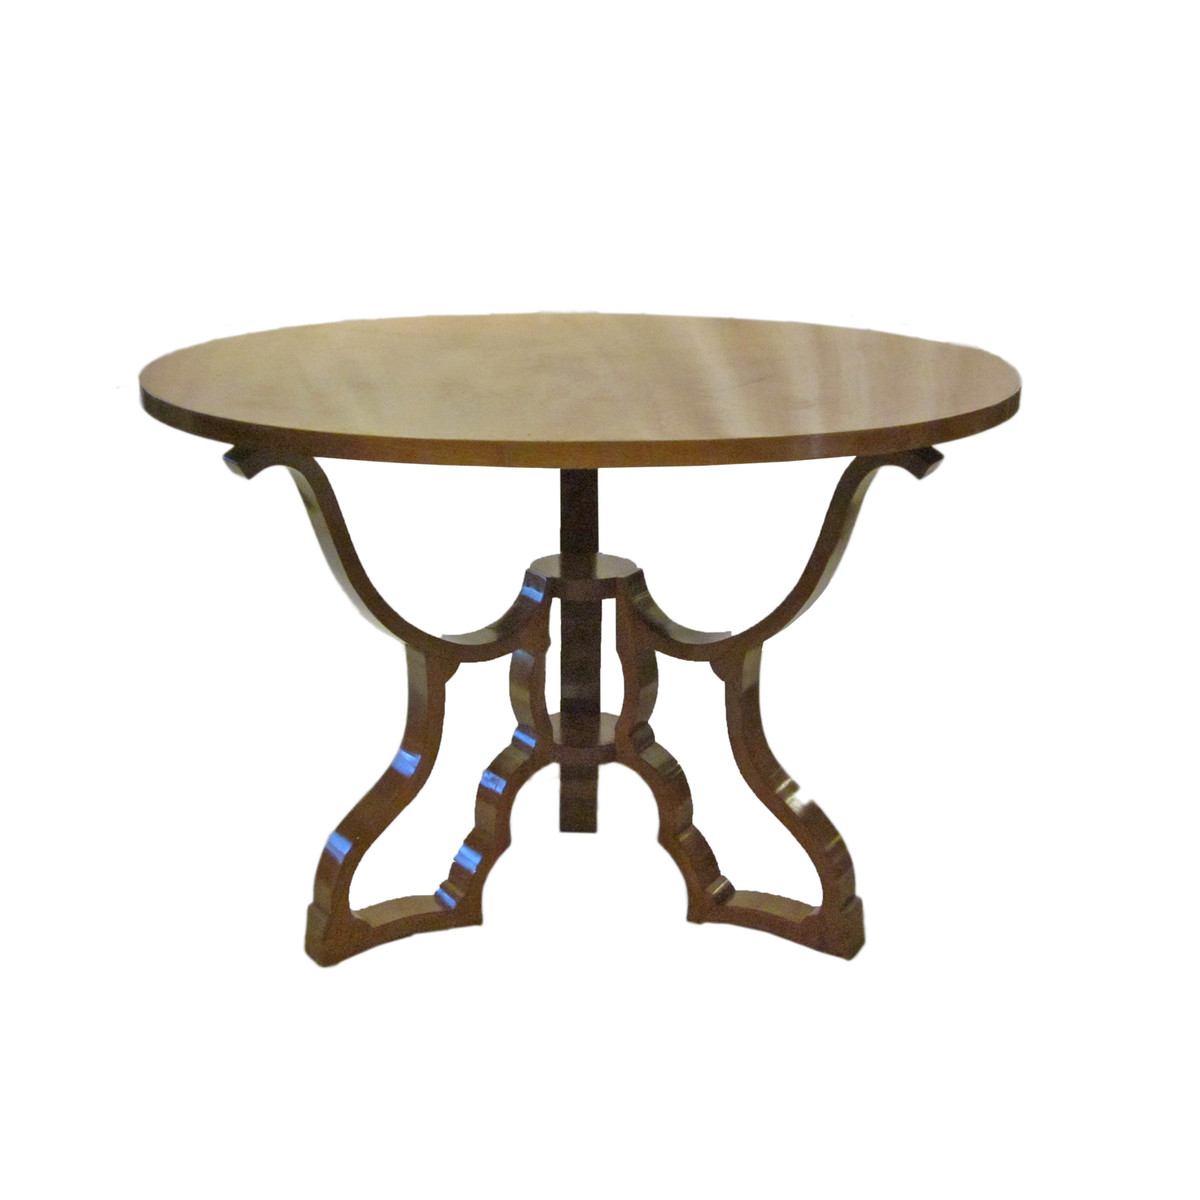 Round center hall table sesigncorp for Round centre table designs